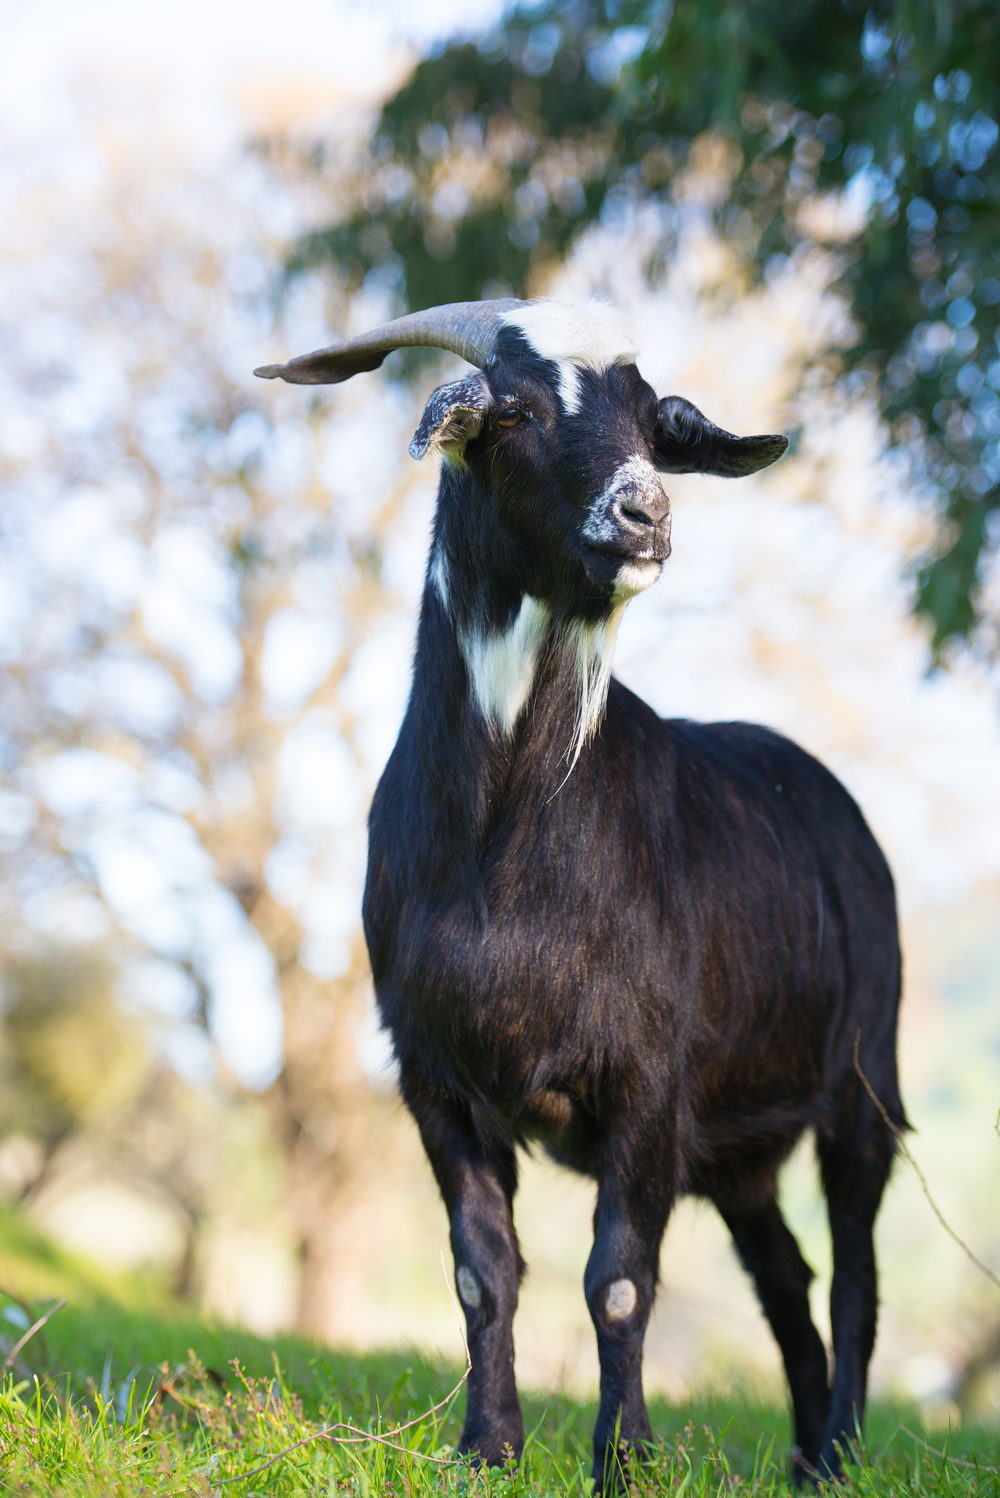 Domino is finally free after escaping a livestock auction.